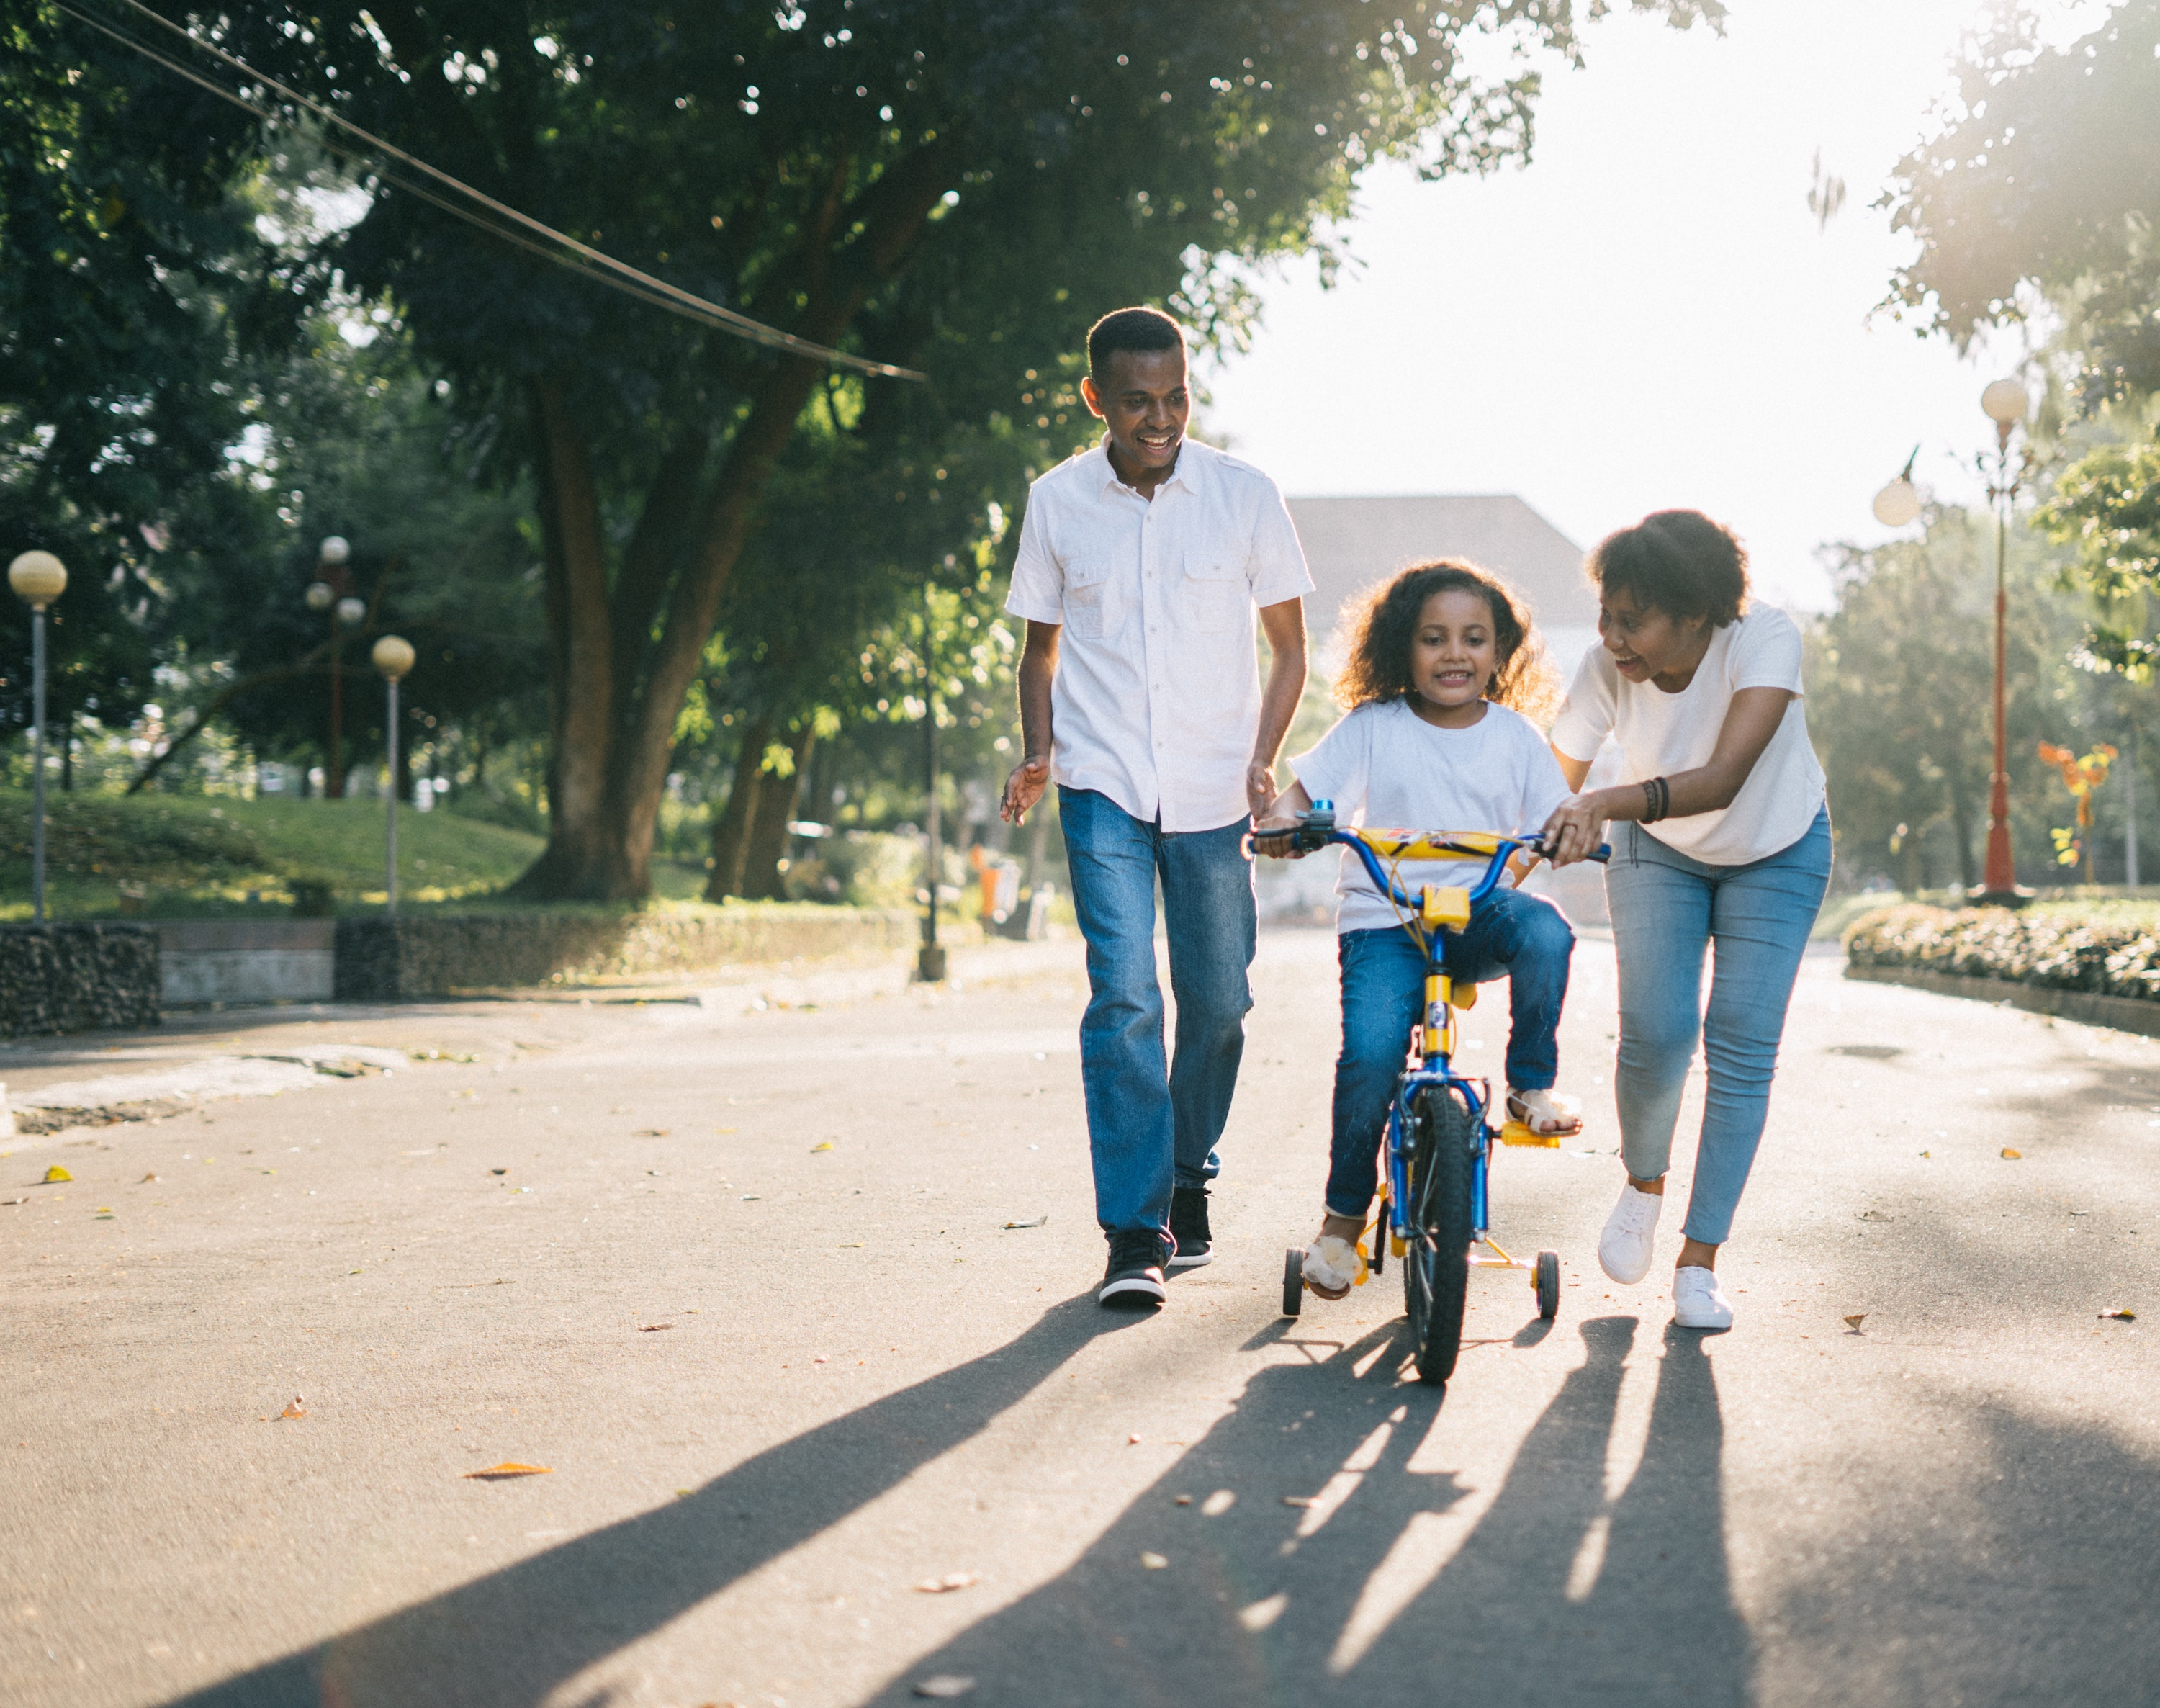 Black family of 3 all wearing blue jeans and white tops while smiling and teaching their daughter how to ride a bike